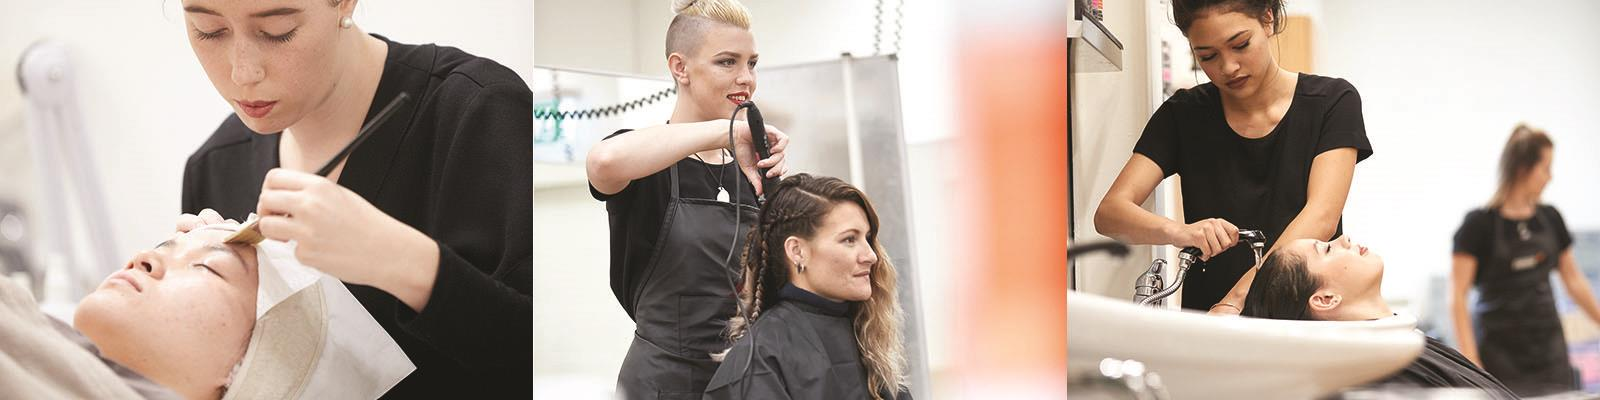 hairdressing and beauty therapy students providing service to clients